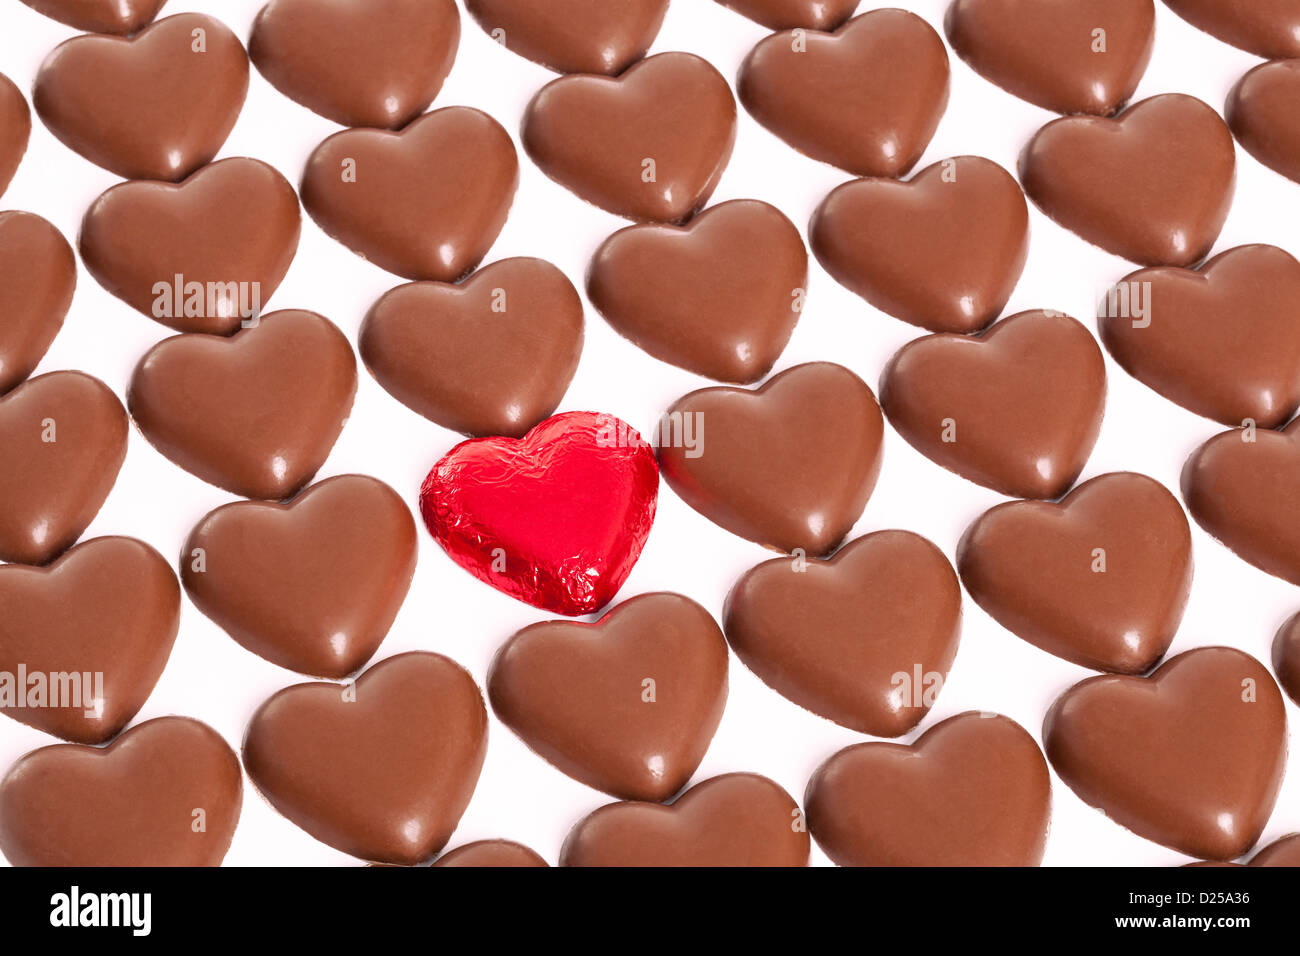 Rows of chocolate hearts with one odd one still in it's red foil wrapper, white background. - Stock Image